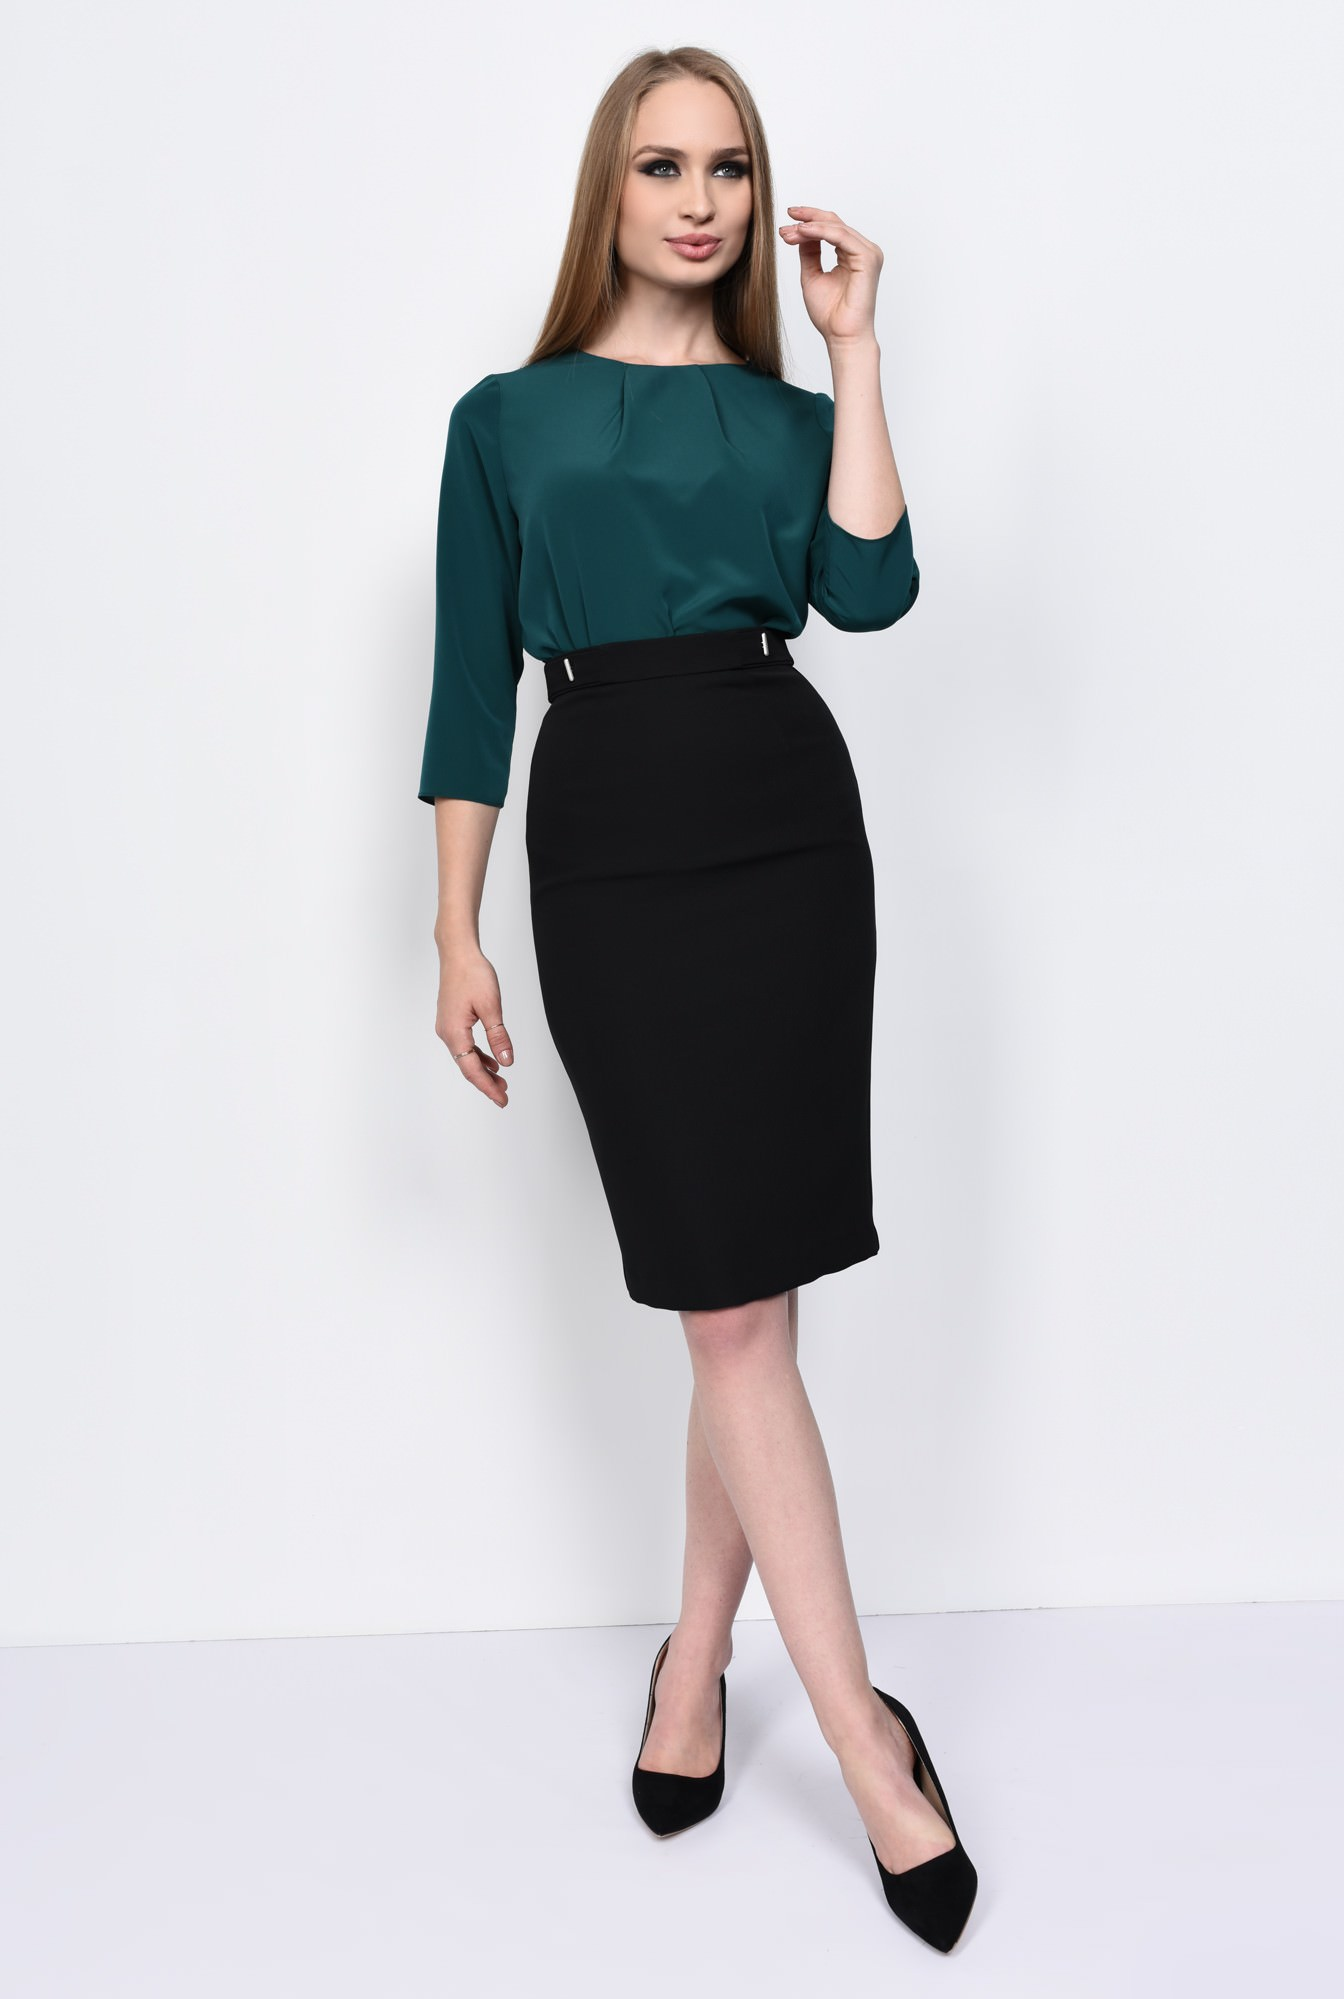 3 - BLUZA OFFICE BL 151-VERDE